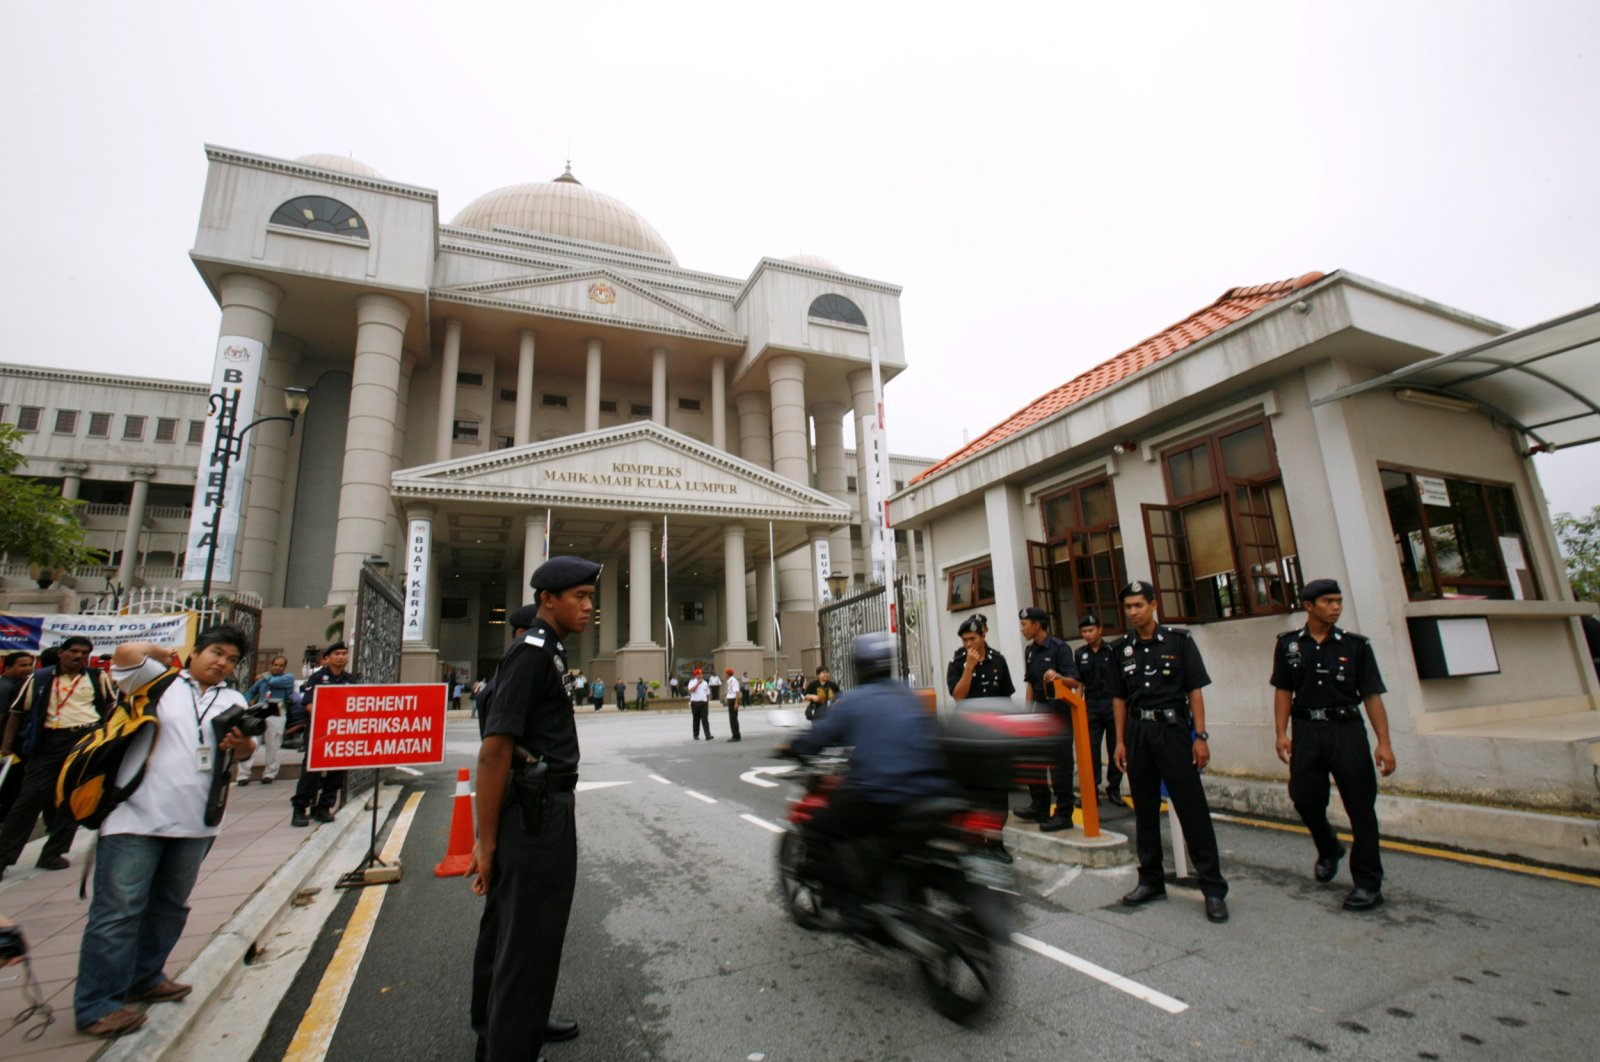 Police monitor traffic at the entrance of Malaysia's High Court before the arrival of Malaysia's opposition leader Anwar Ibrahim in Kuala Lumpur July 8, 2009. (Reuters Photo)